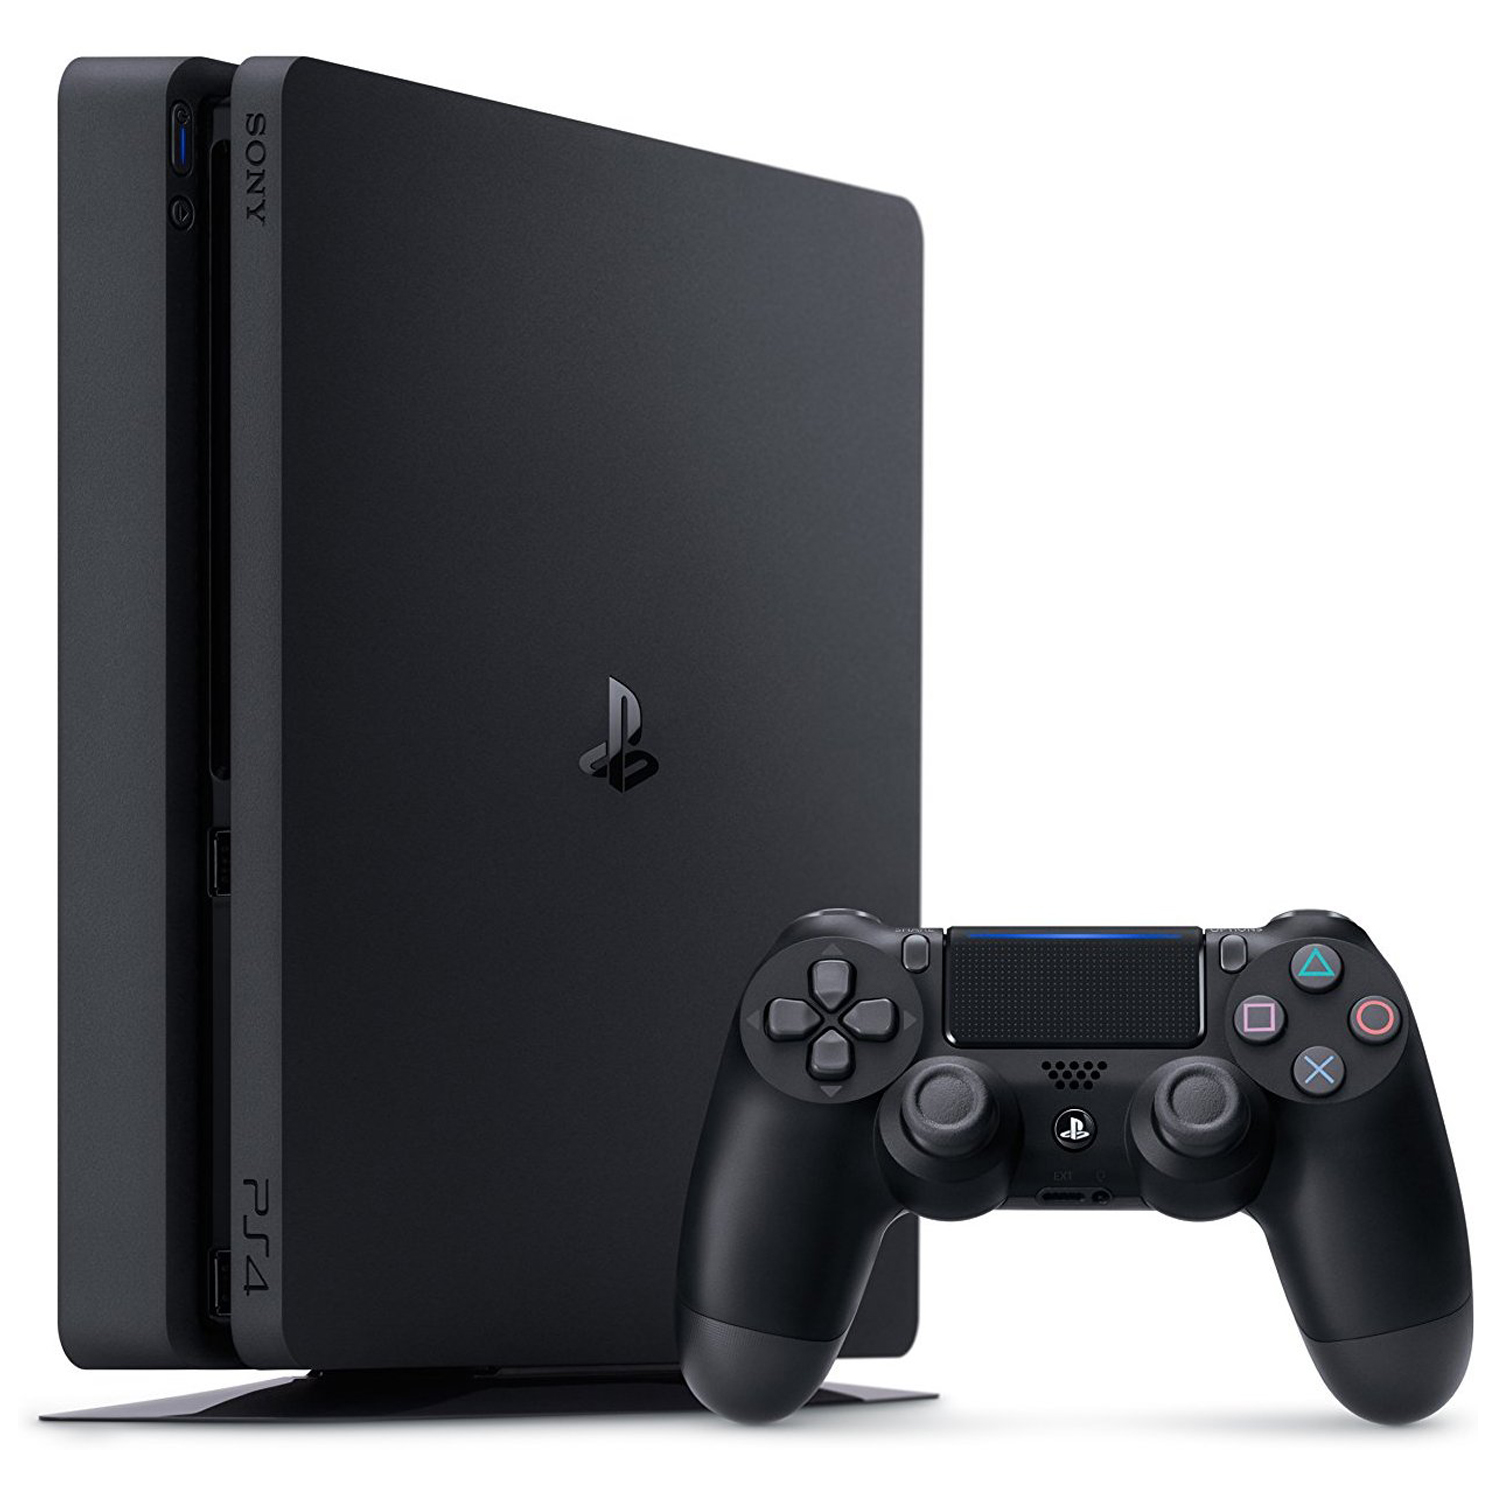 Sony PlayStation 4, 500GB Slim System [CUH-2215AB01], Black, 3003347 by Sony